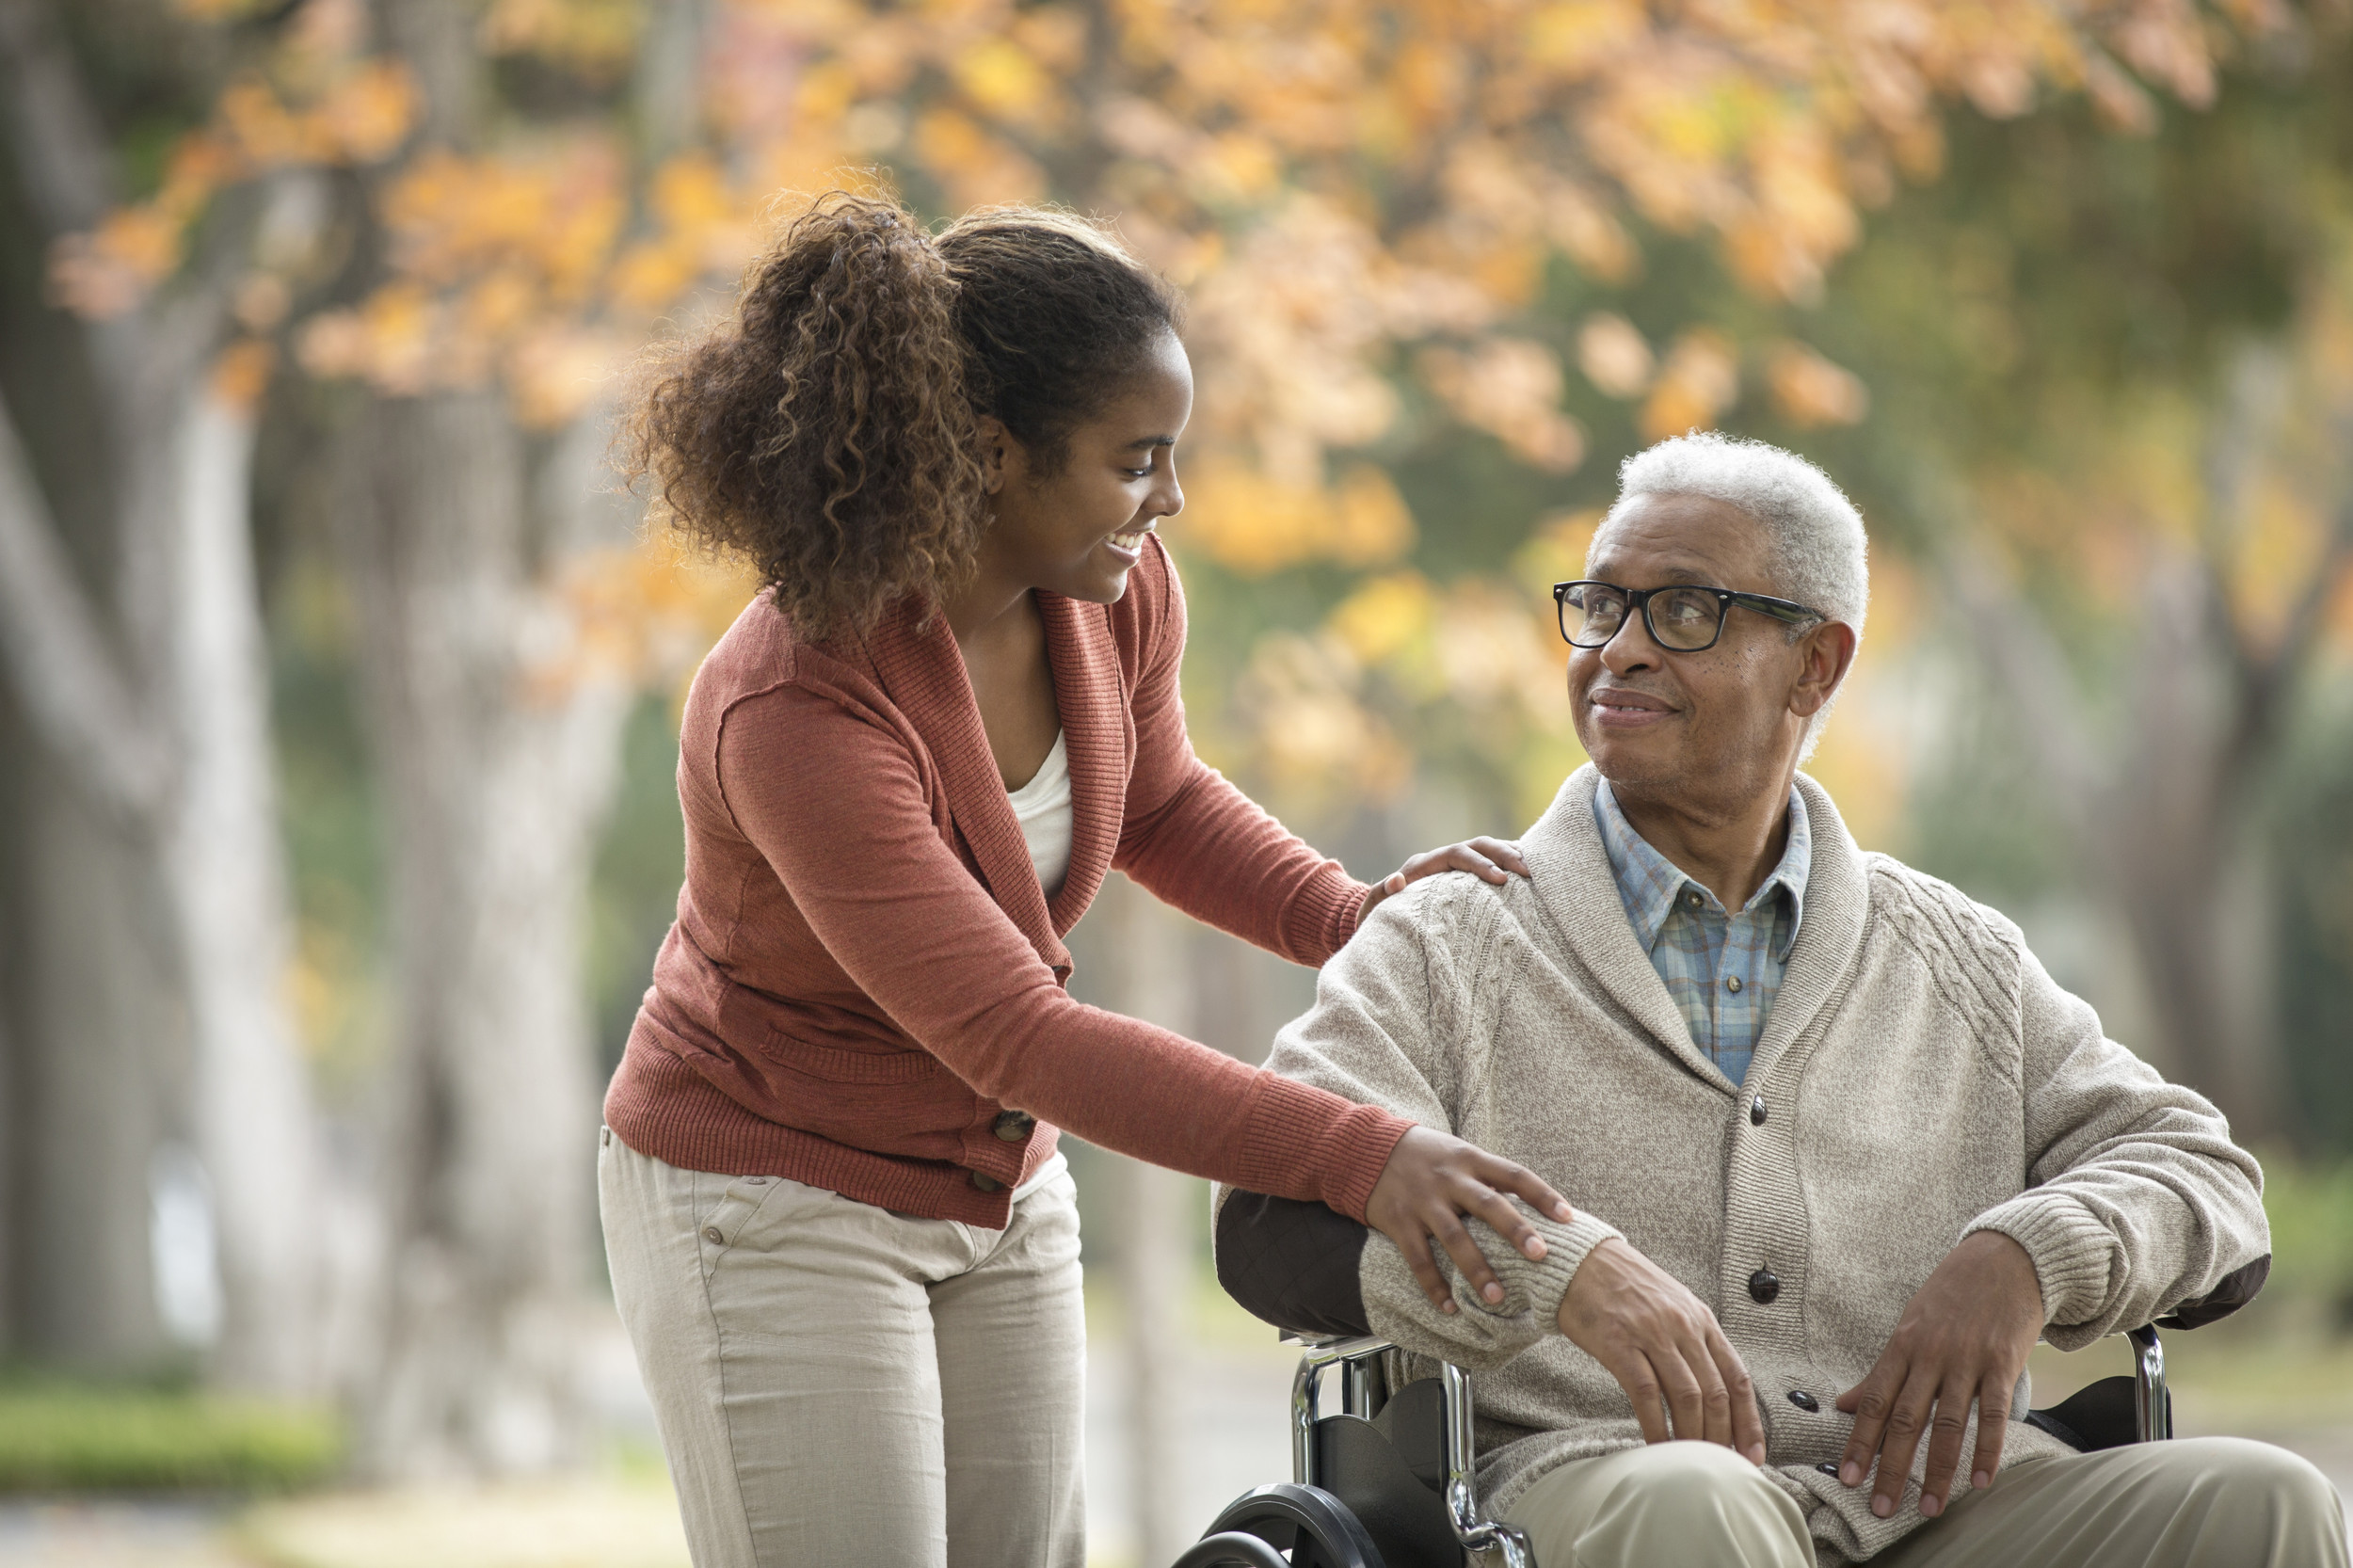 How to prepare: Caring for your aging parents